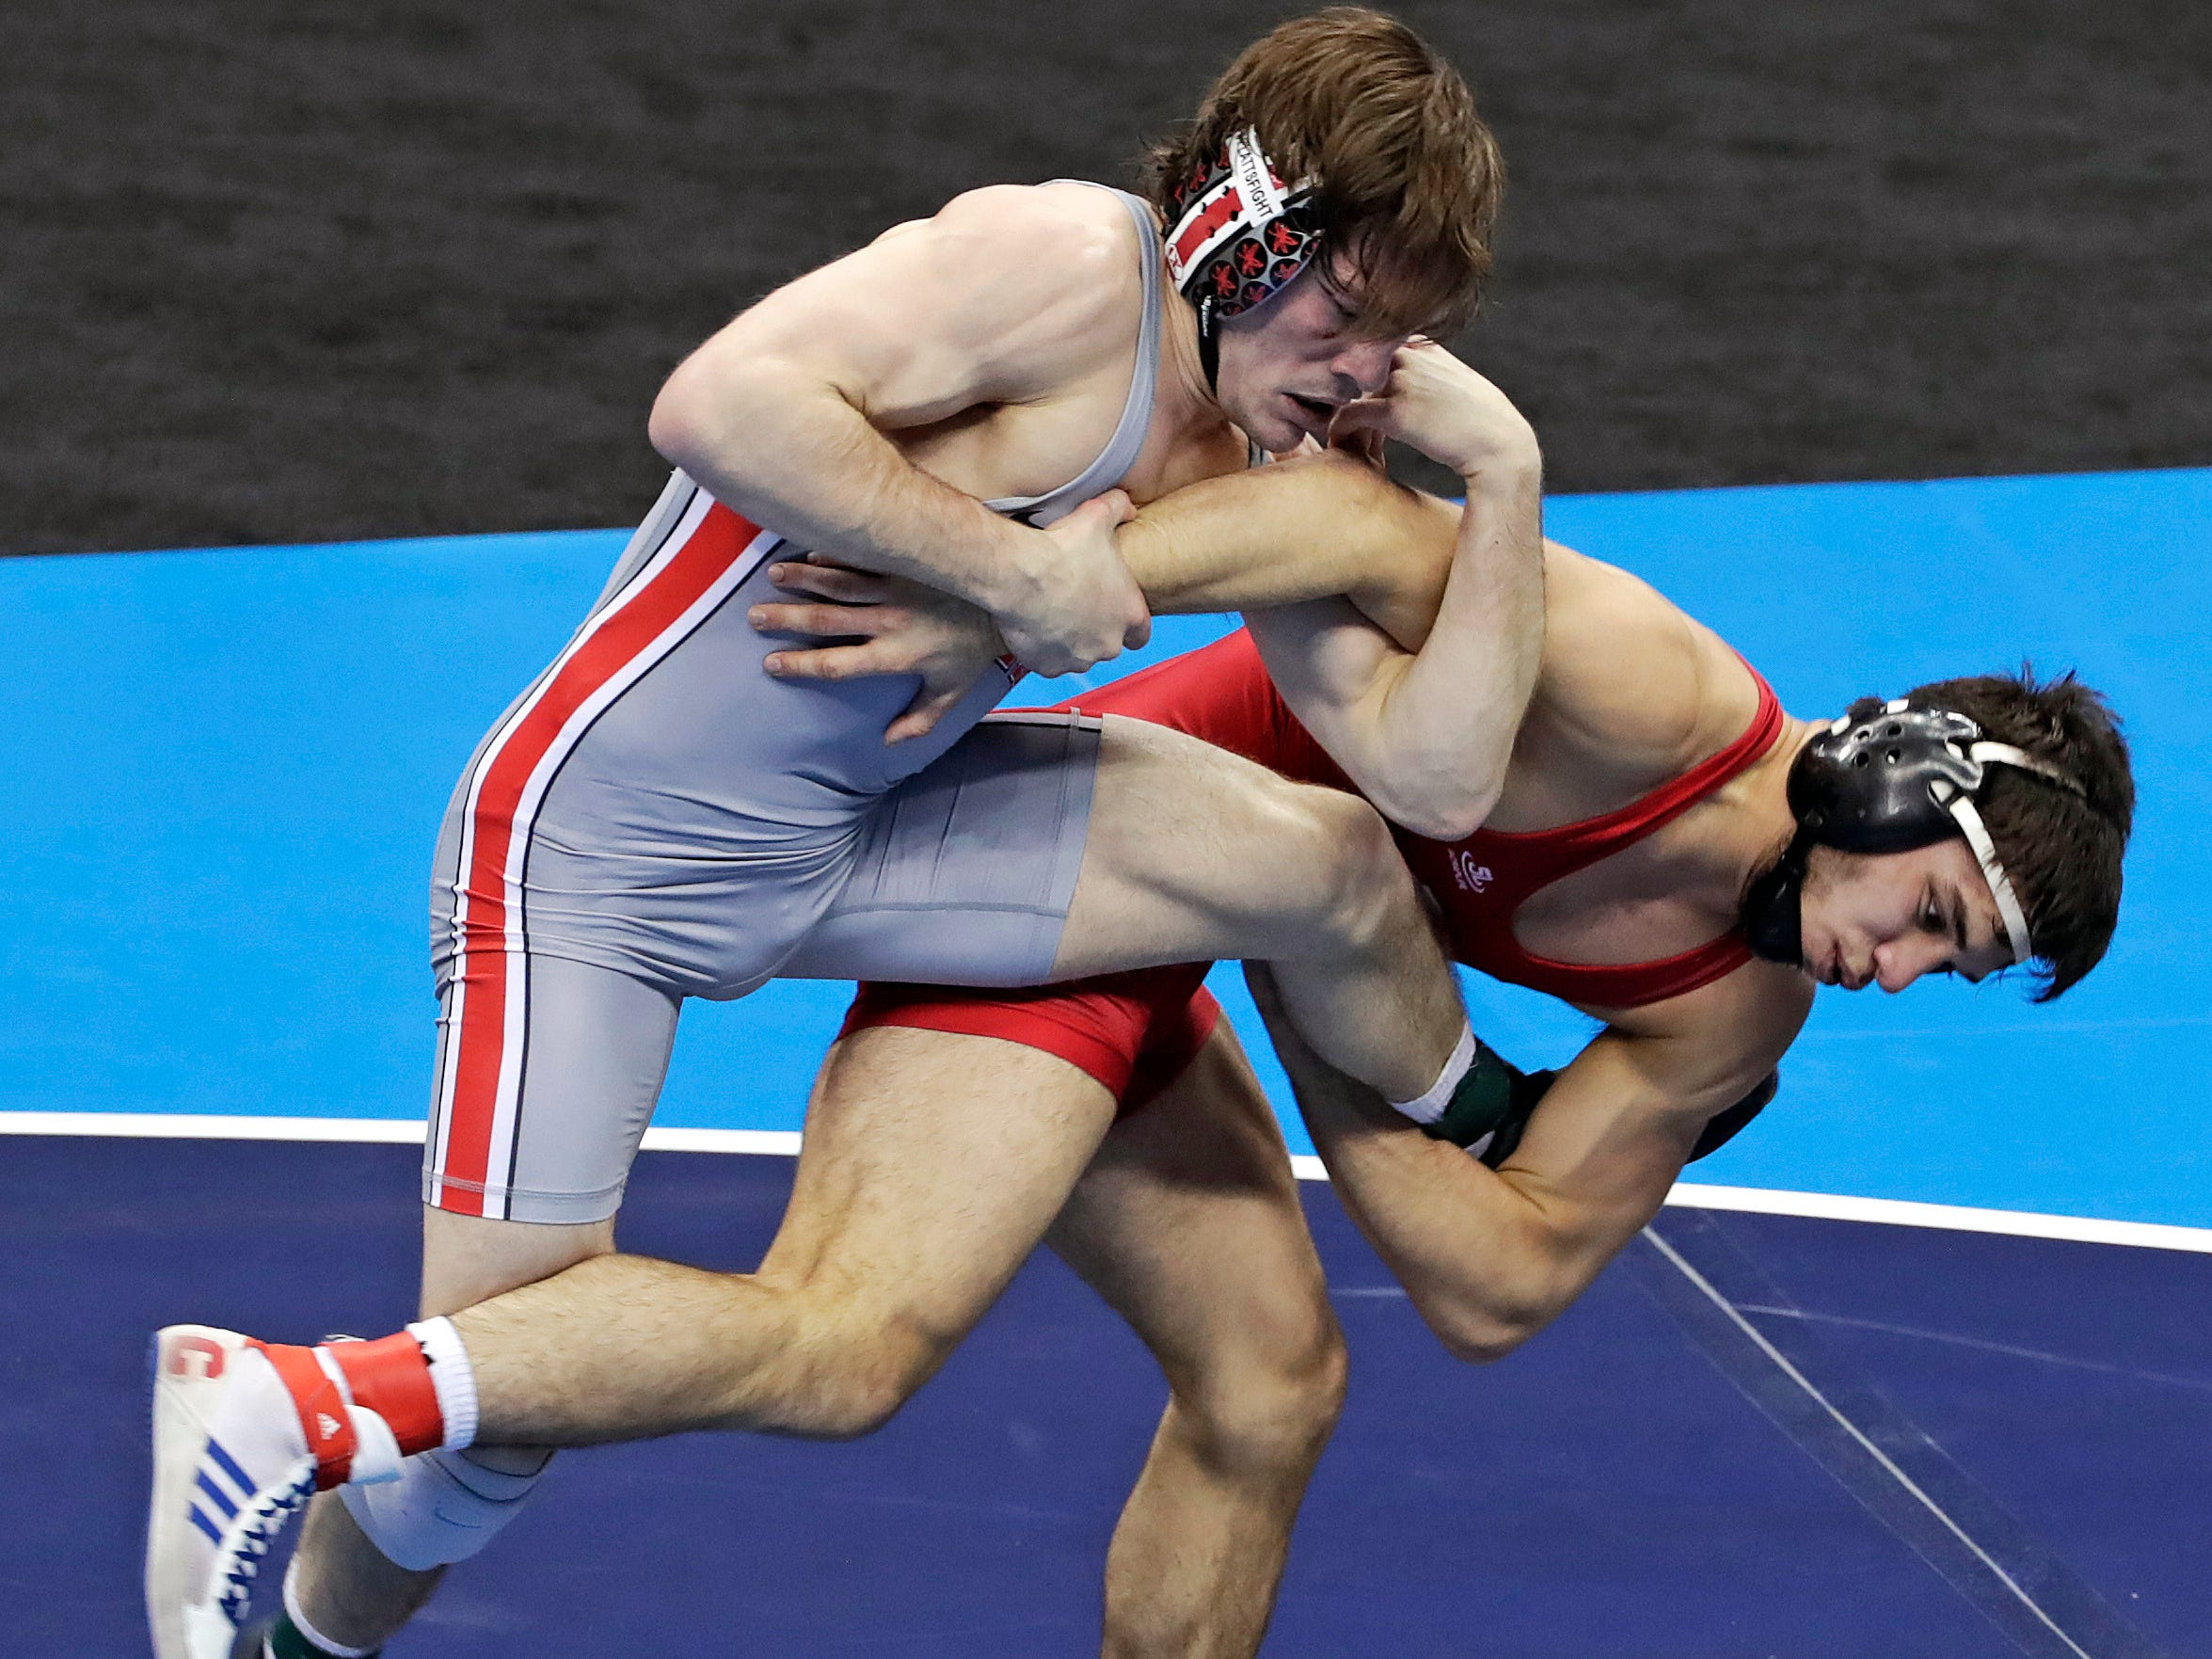 Cornell's Yianni Diakomihalis, right, tries to takedown Ohio State's Joey McKenna in their 141-pound match in the finals of the NCAA wrestling championships Saturday, March 23, 2019 in Pittsburgh. Diakomihalis won the match. (AP Photo/Gene J. Puskar)